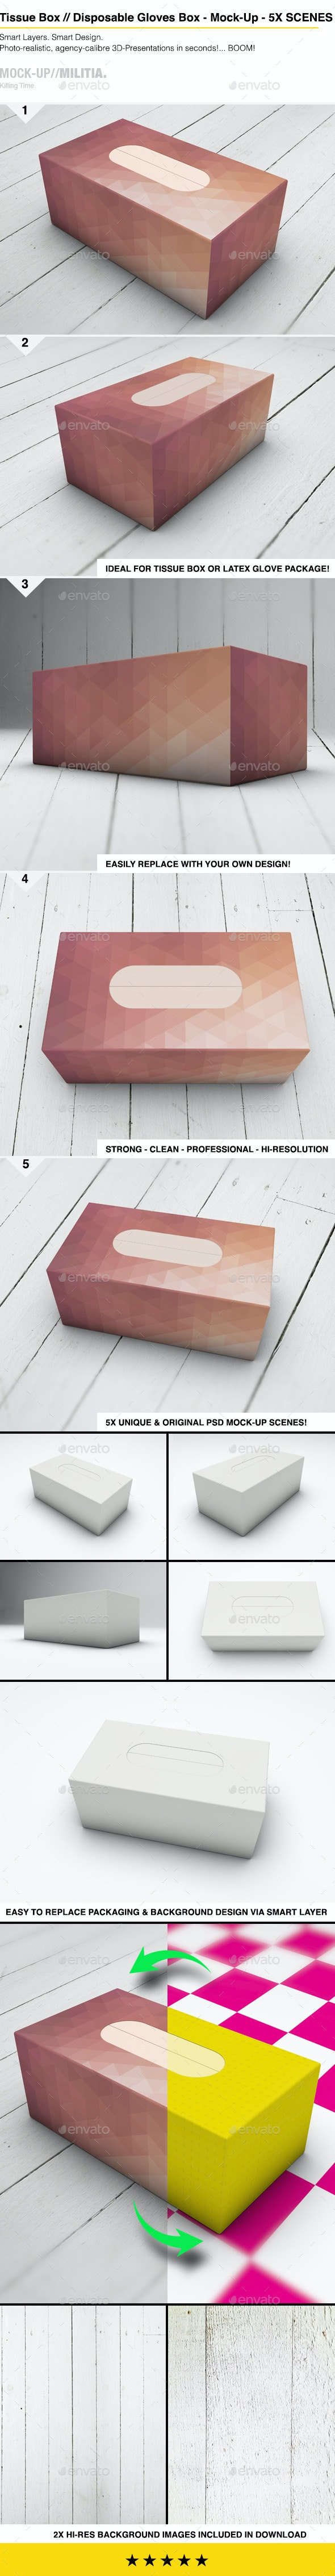 Tissue Box   Paper   Cardboard Box Mock-Up - Miscellaneous Packaging